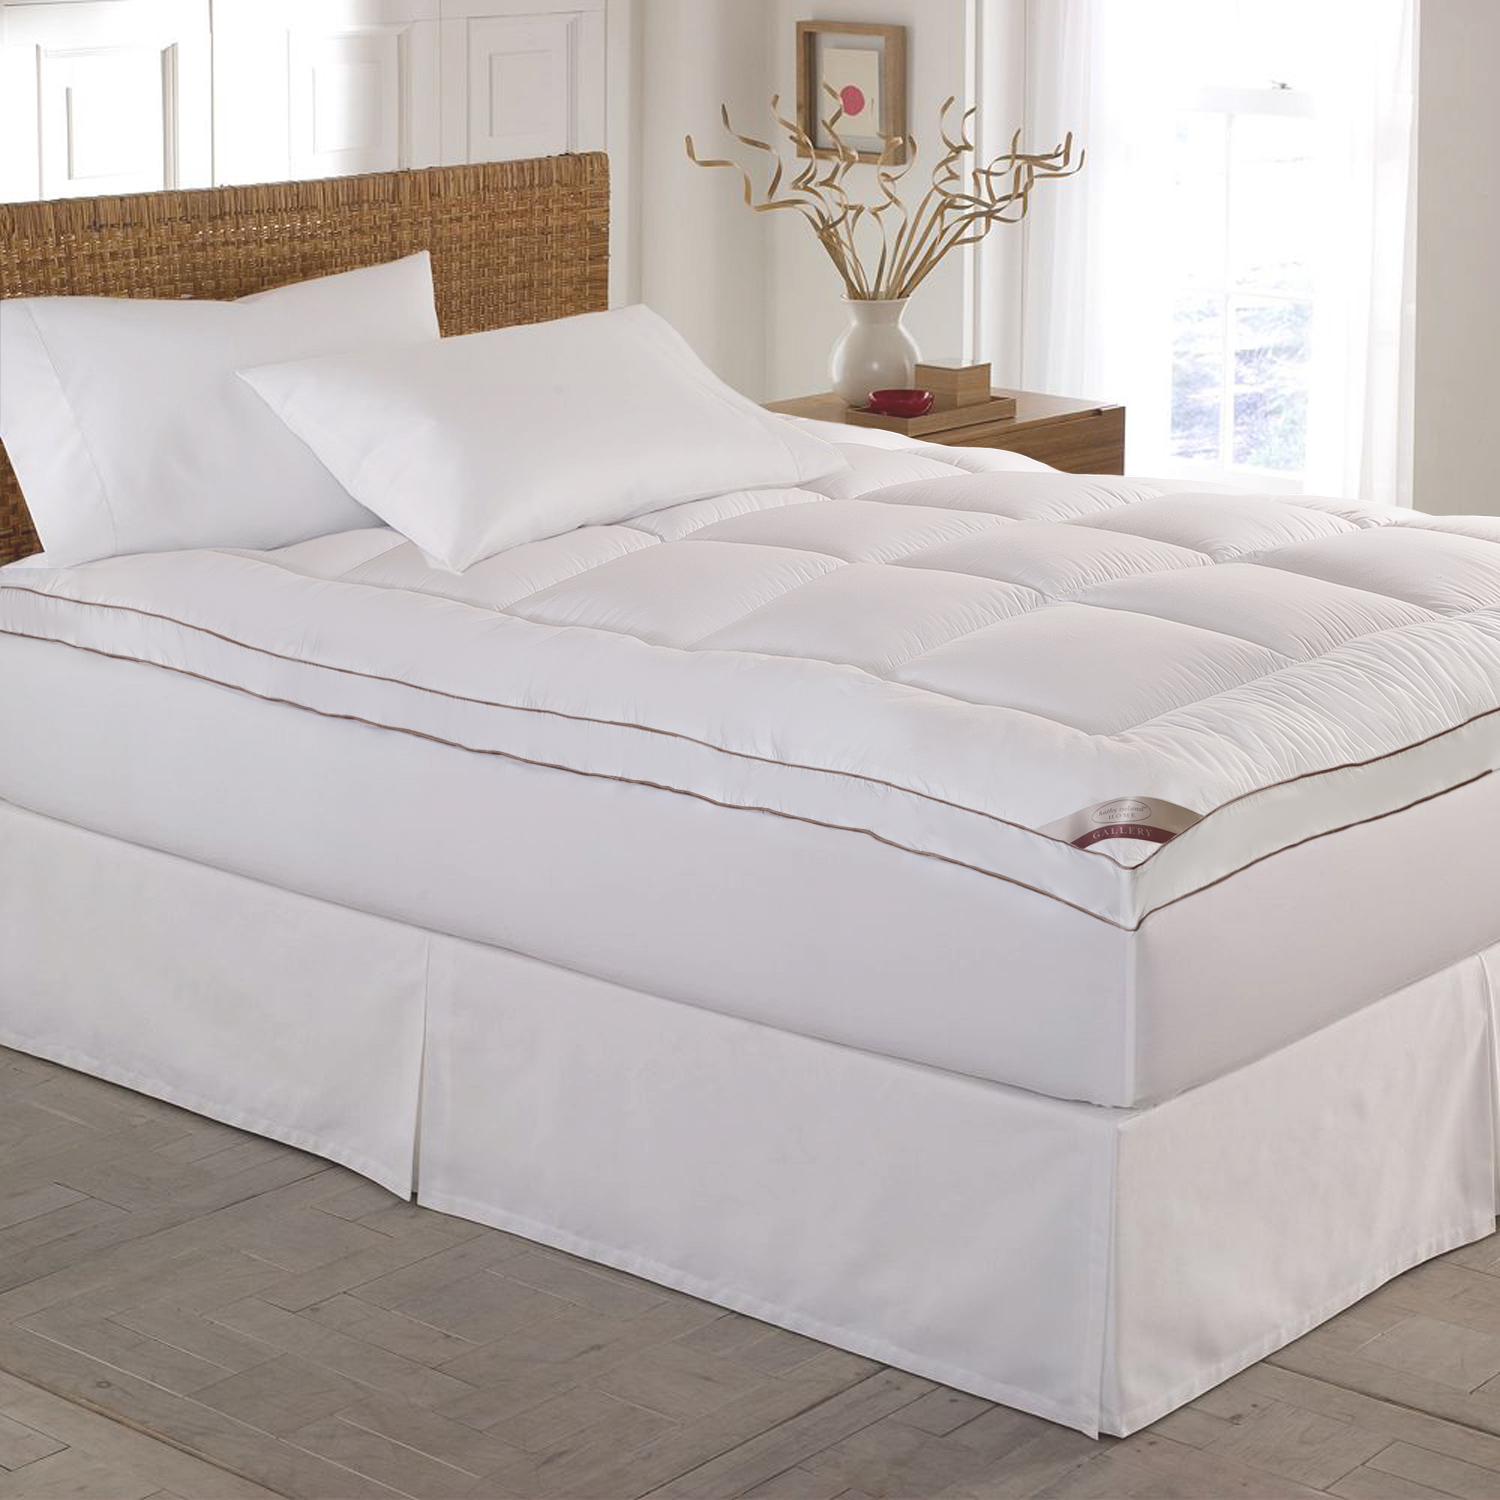 Blue Ridge Kathy Ireland Home Gallery Cotton Gusseted Feather Bed